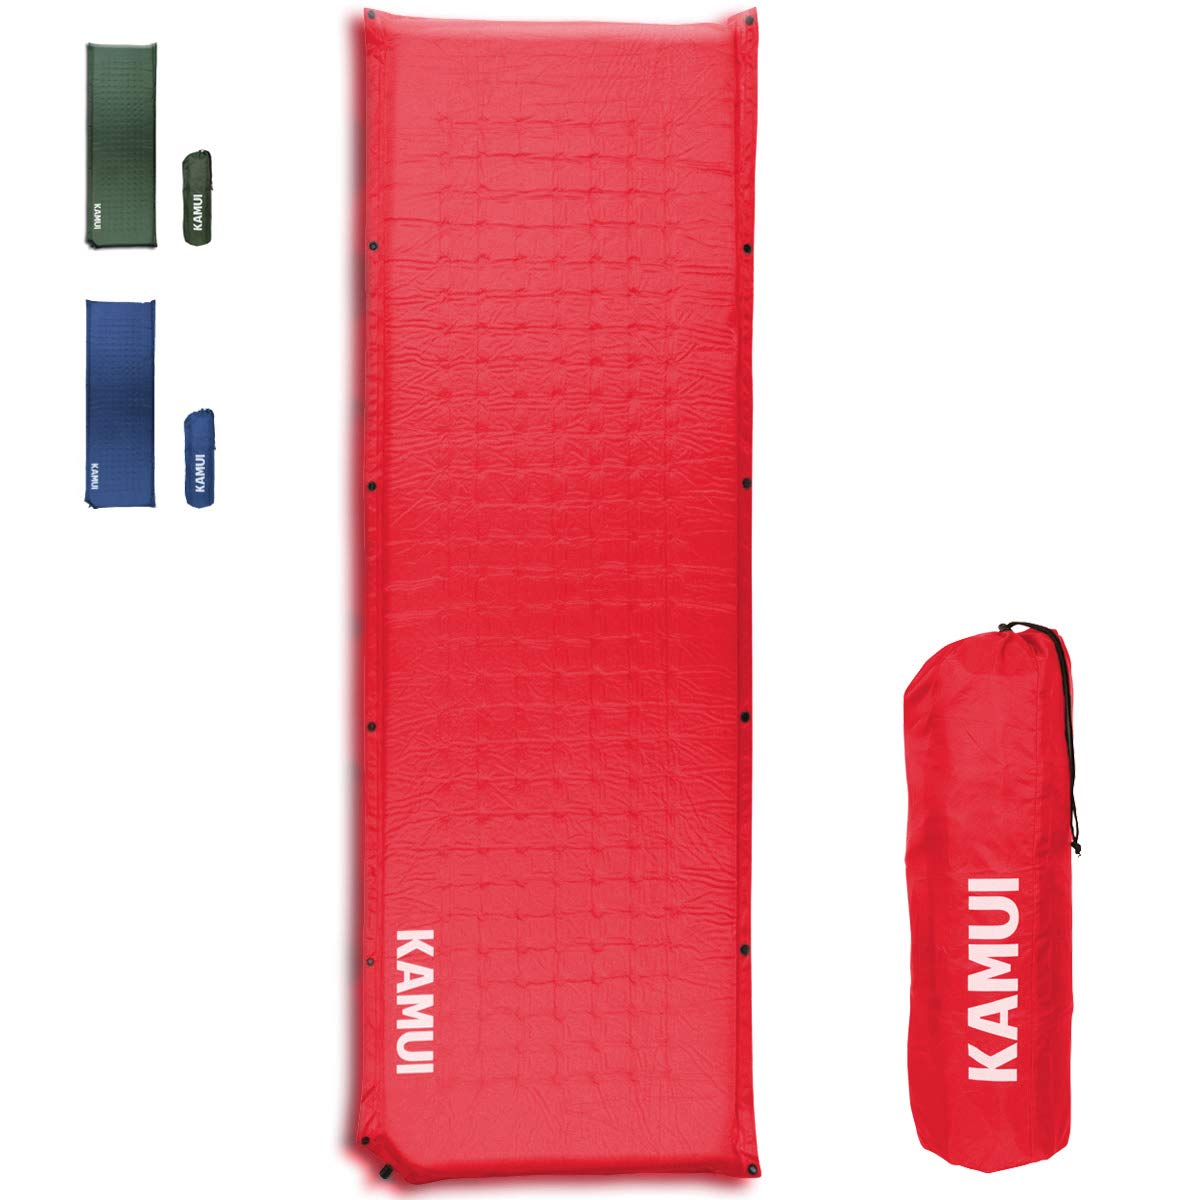 KAMUI Self Inflating Sleeping Pad - 2 Inch Thick Camping Pad Connectable with Multiple Mats for Tent and Family Camping (Red) by KAMUI